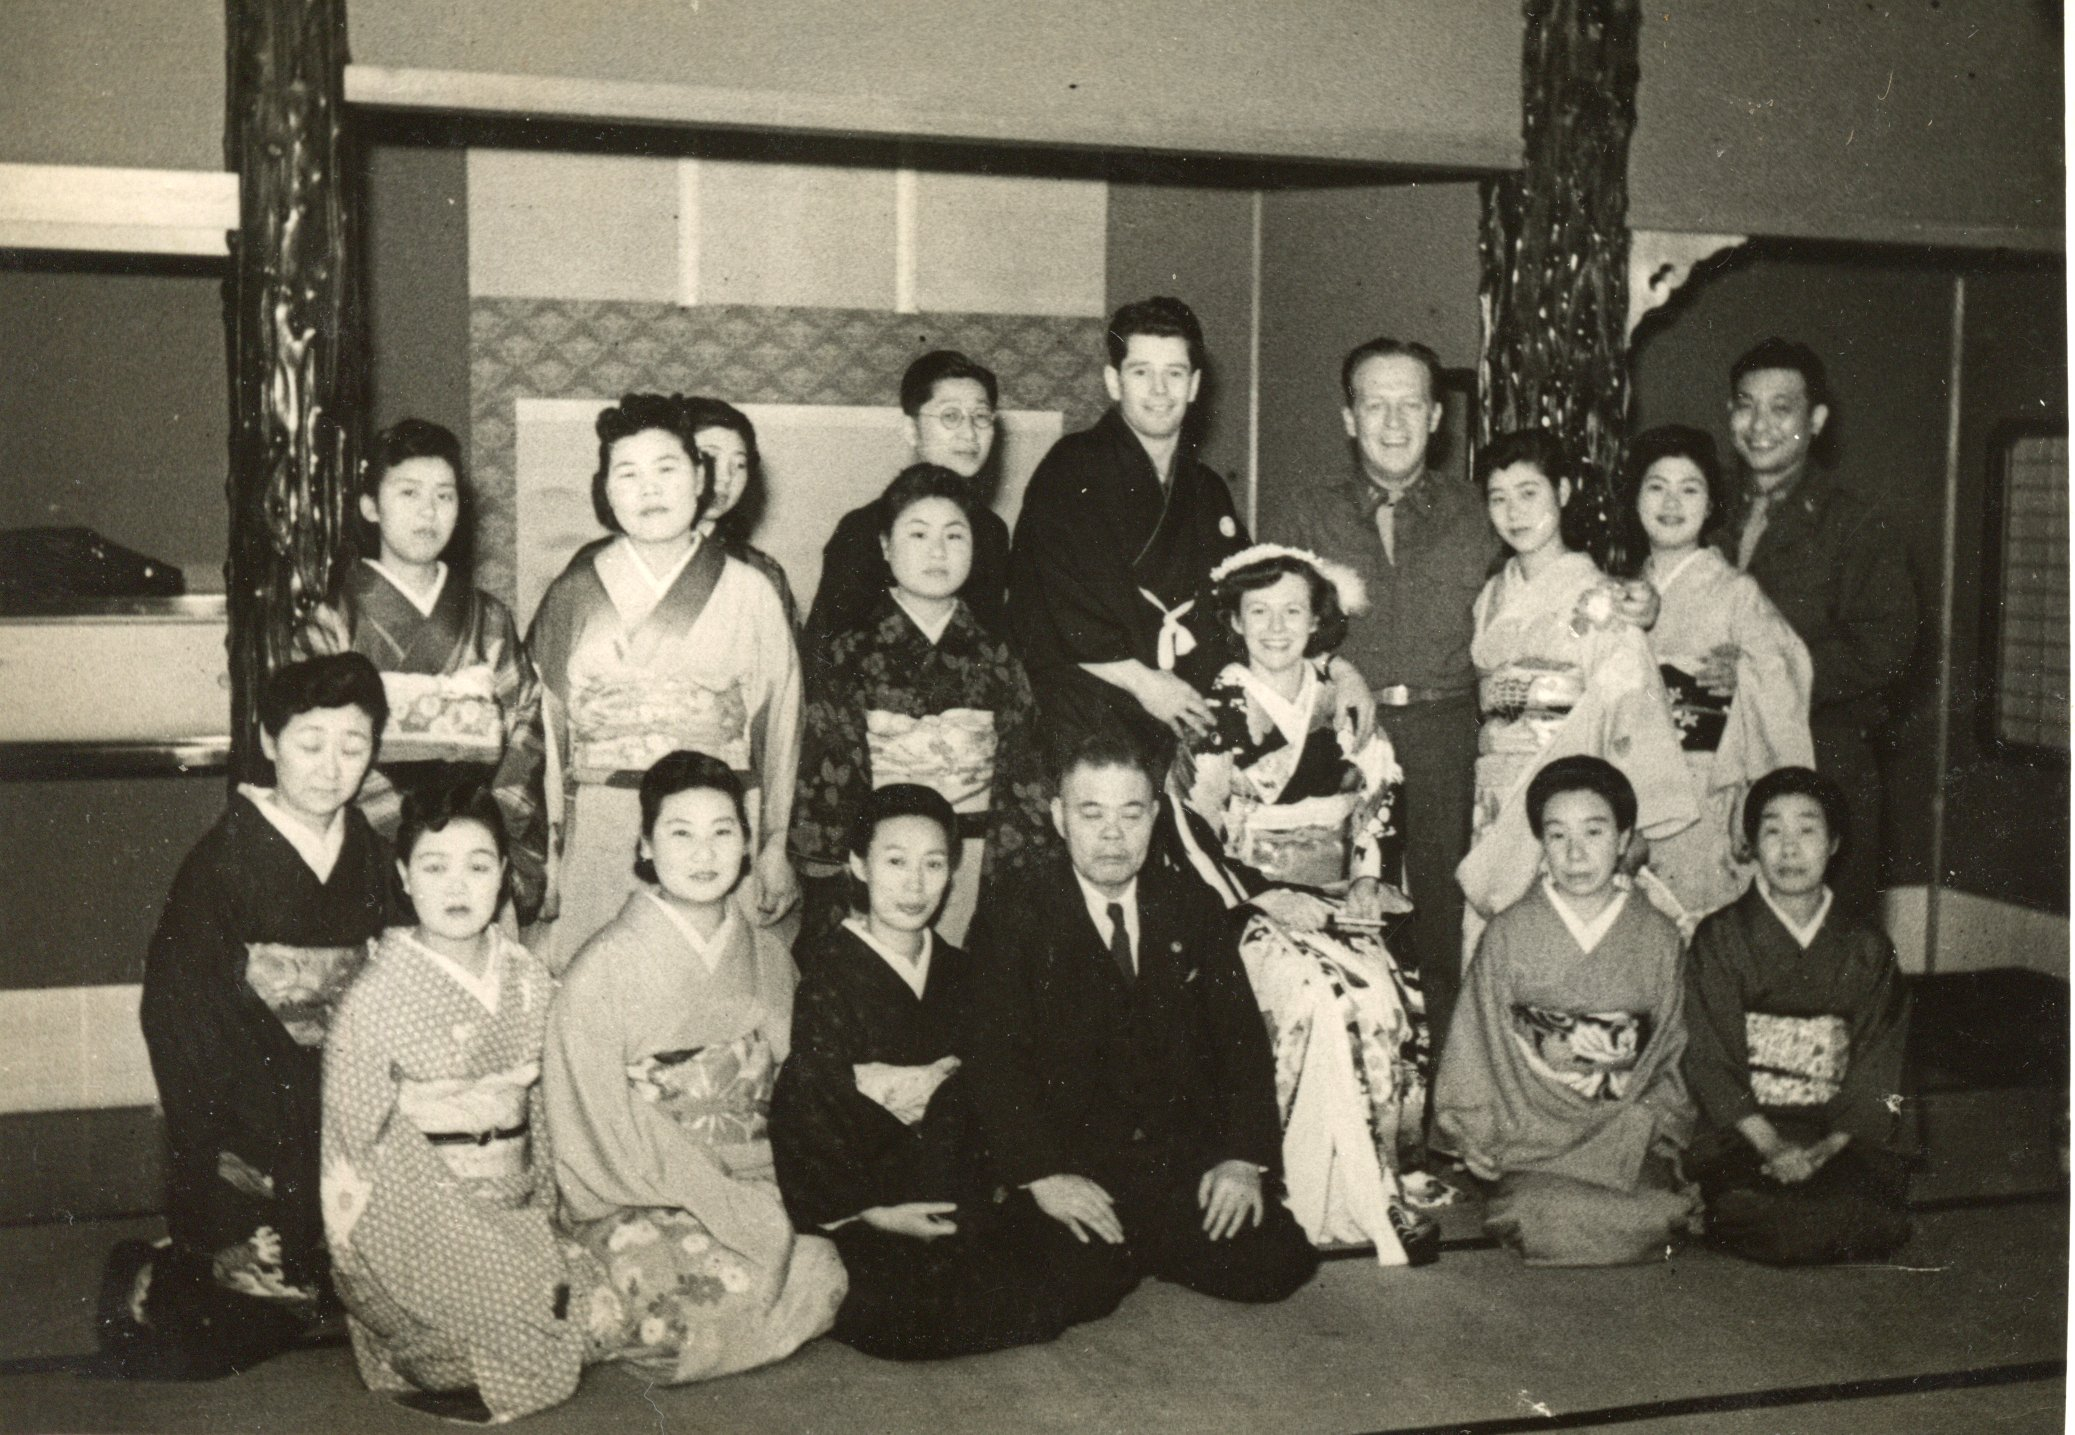 American Army officers marry in a traditional Japanese style wedding